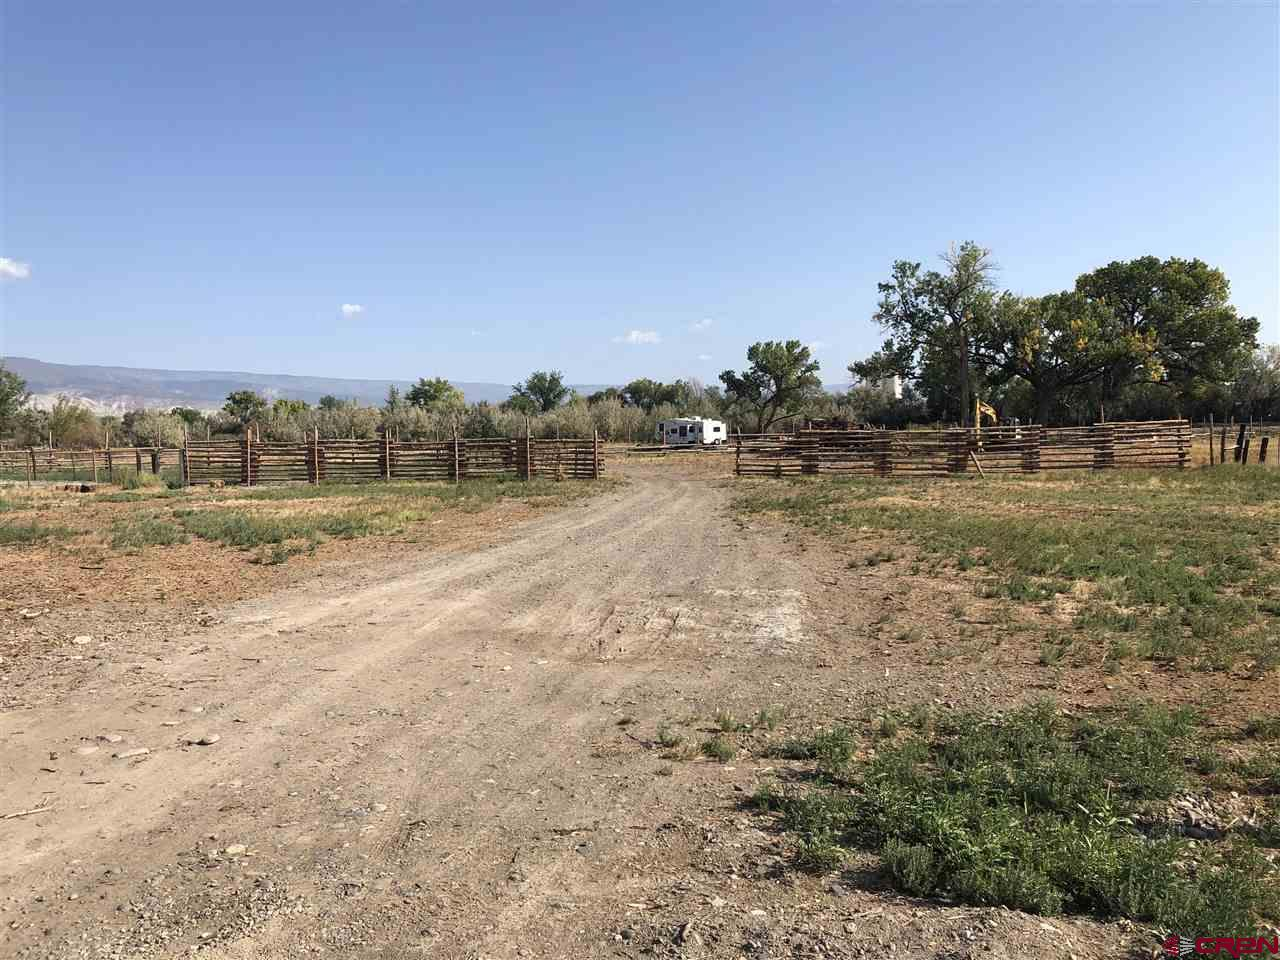 Desirable river frontage awaits!  No covenants, not in City limits either!  Power and water have both been brought onto the property - there are several frost-free water spigots for watering livestock!  Minutes away from downtown shopping with lovely views of Grand Mesa and more!